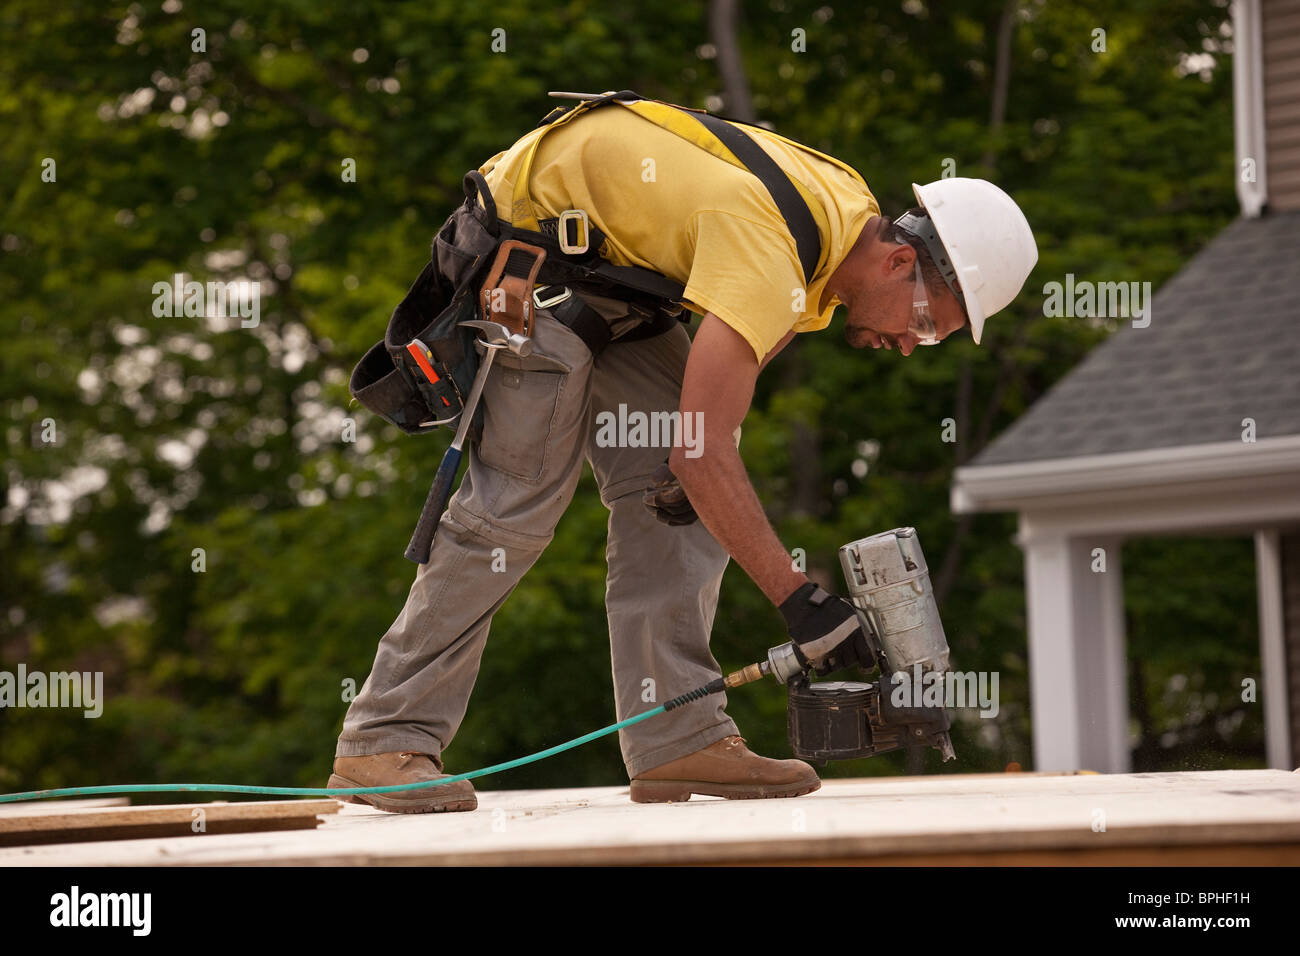 Nailing Tool Stock Photos Amp Nailing Tool Stock Images Alamy